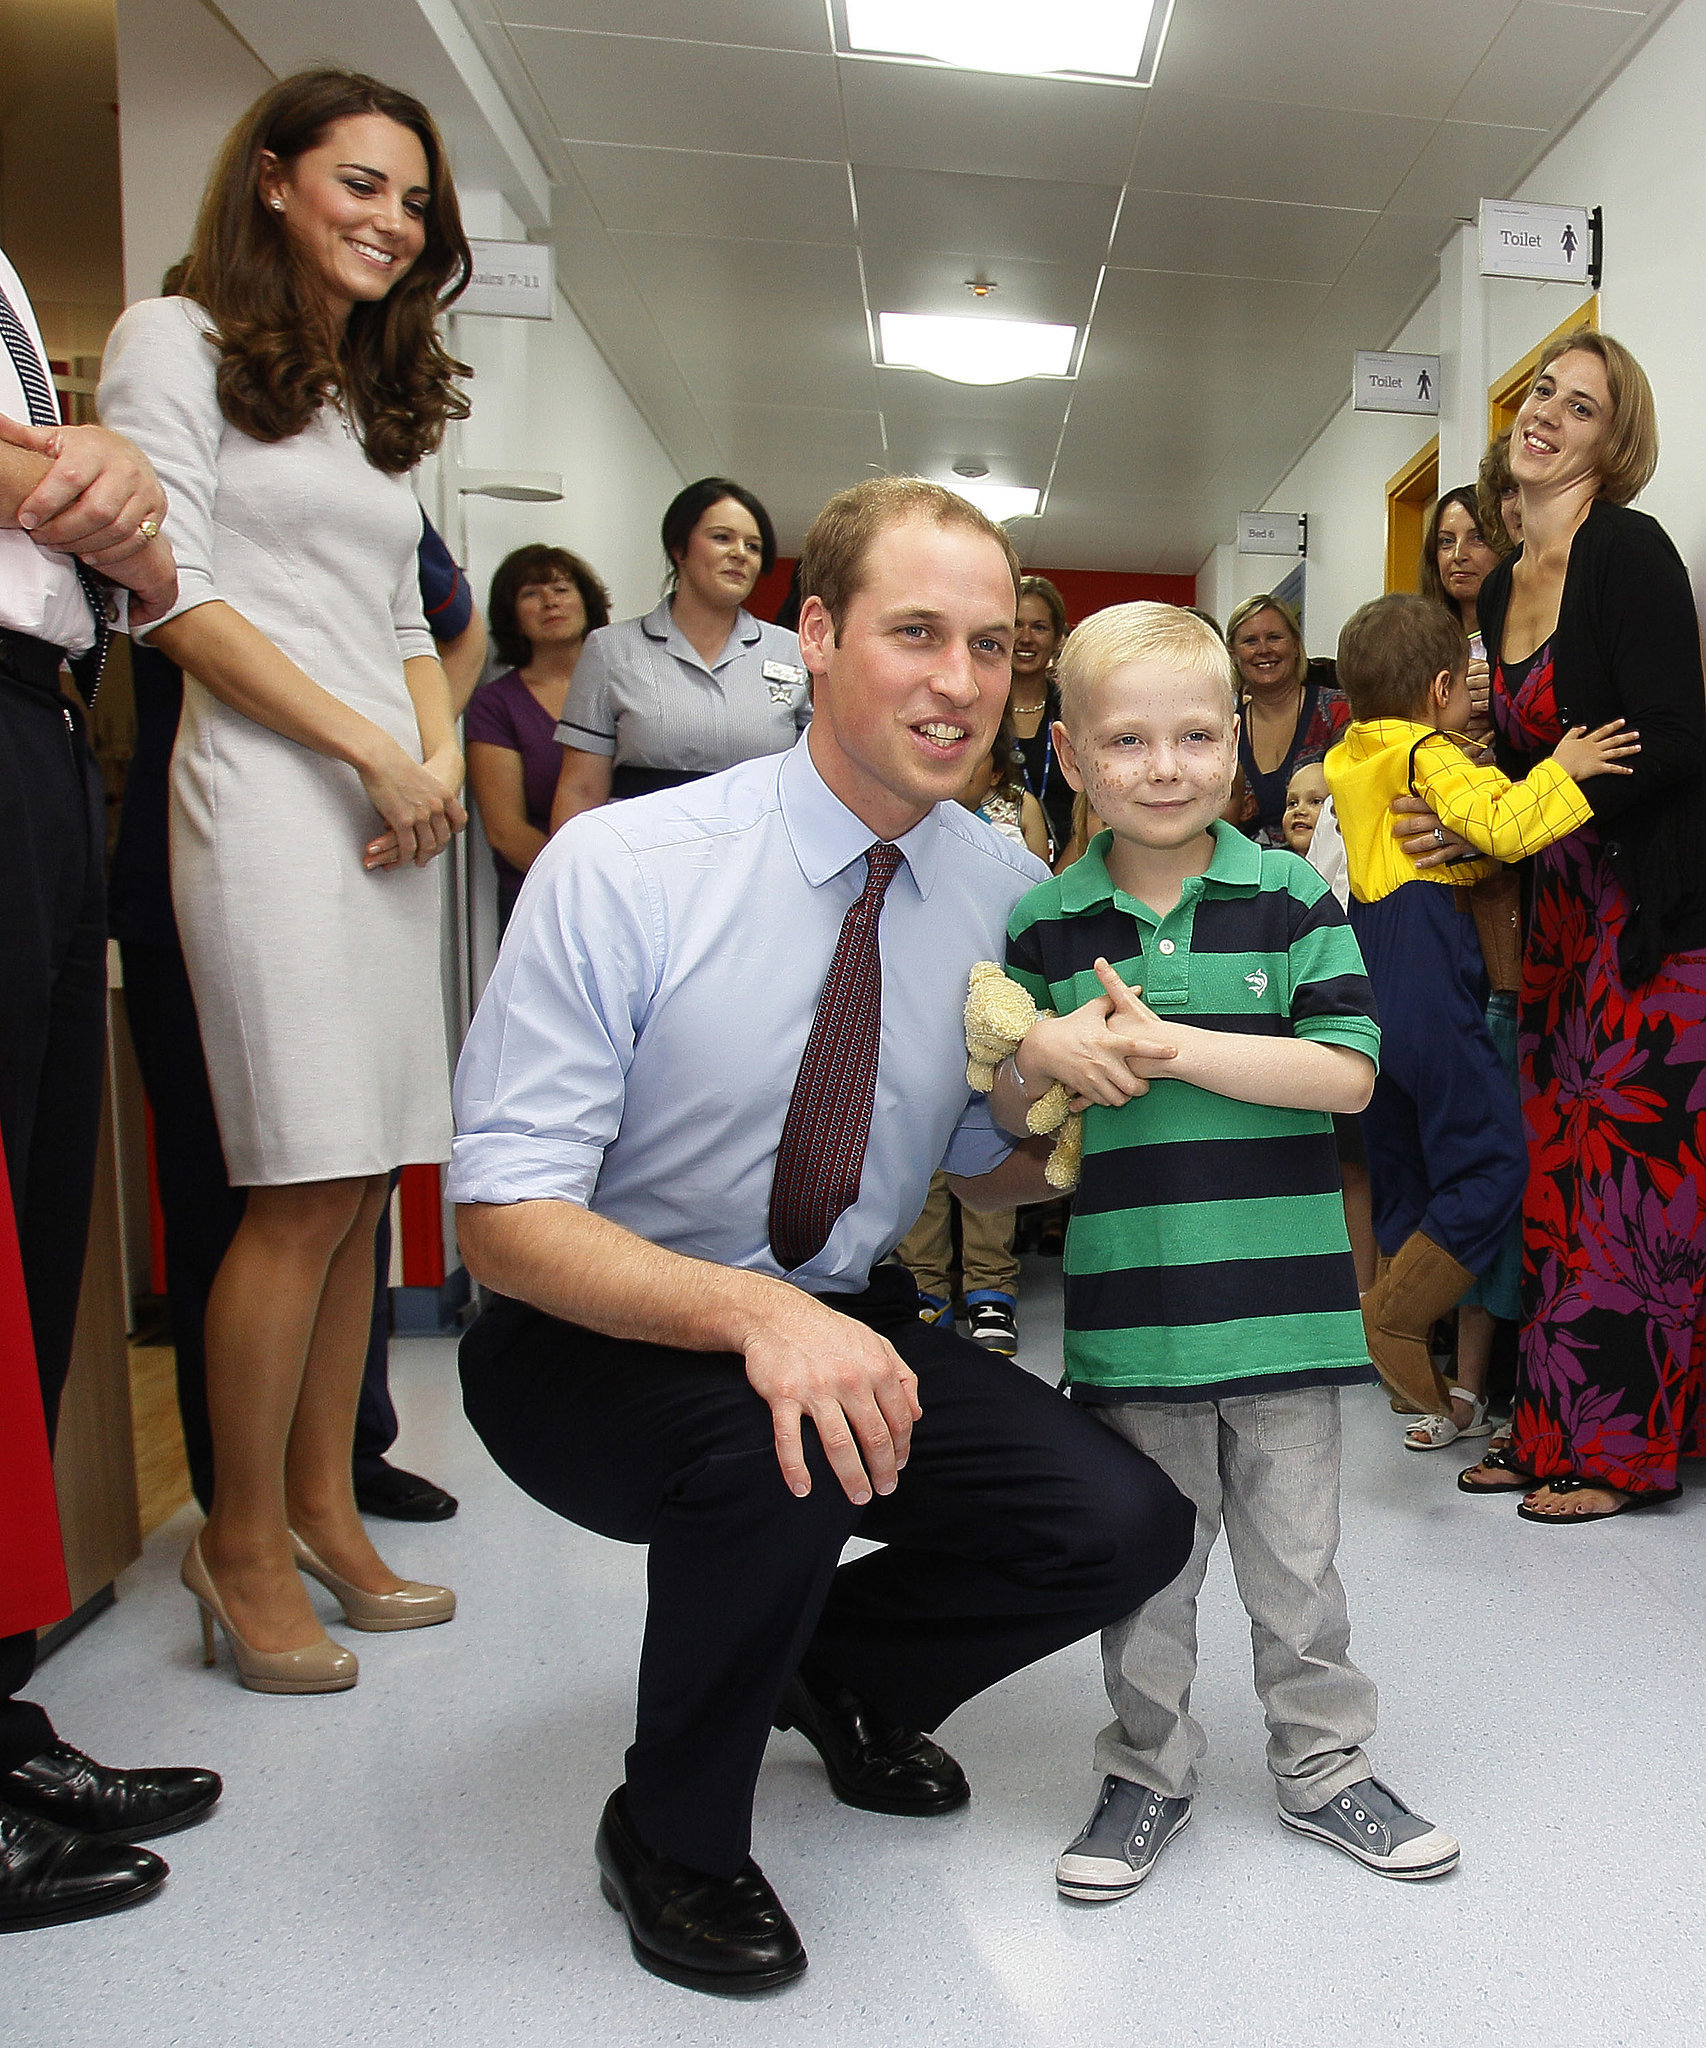 Kate Middleton looked on while Prince William posed with a young boy at London's Royal Marsden Hospital in September 2011.